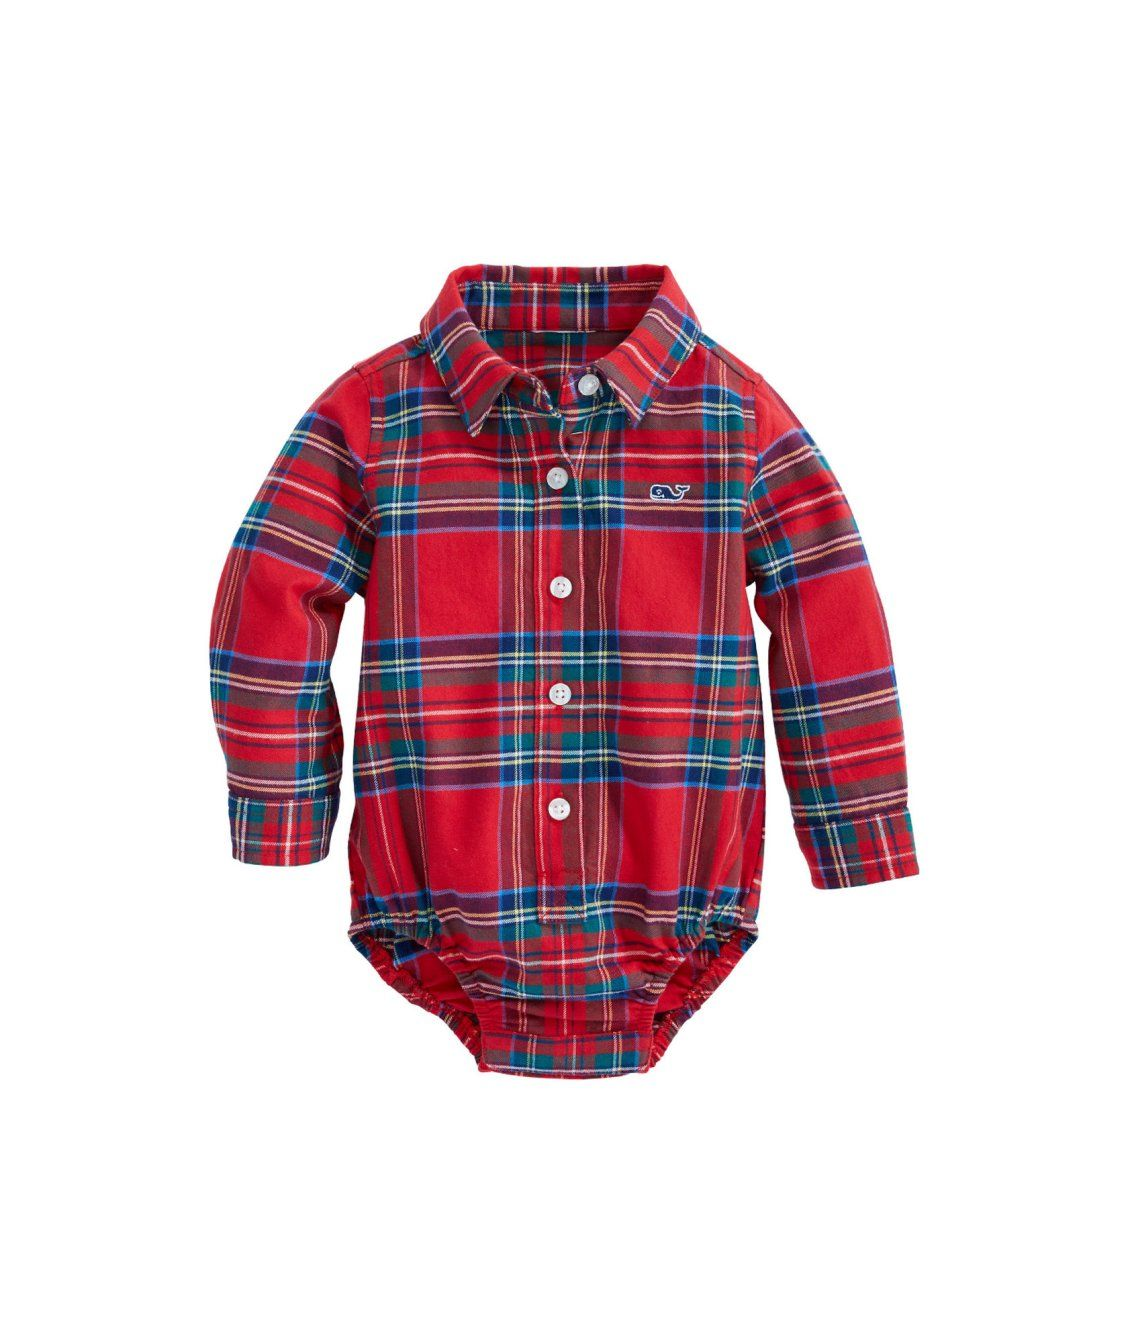 ce8be6492 Baby Jolly Plaid Flannel Onesie | new arrivals | Baby boy outfits ...